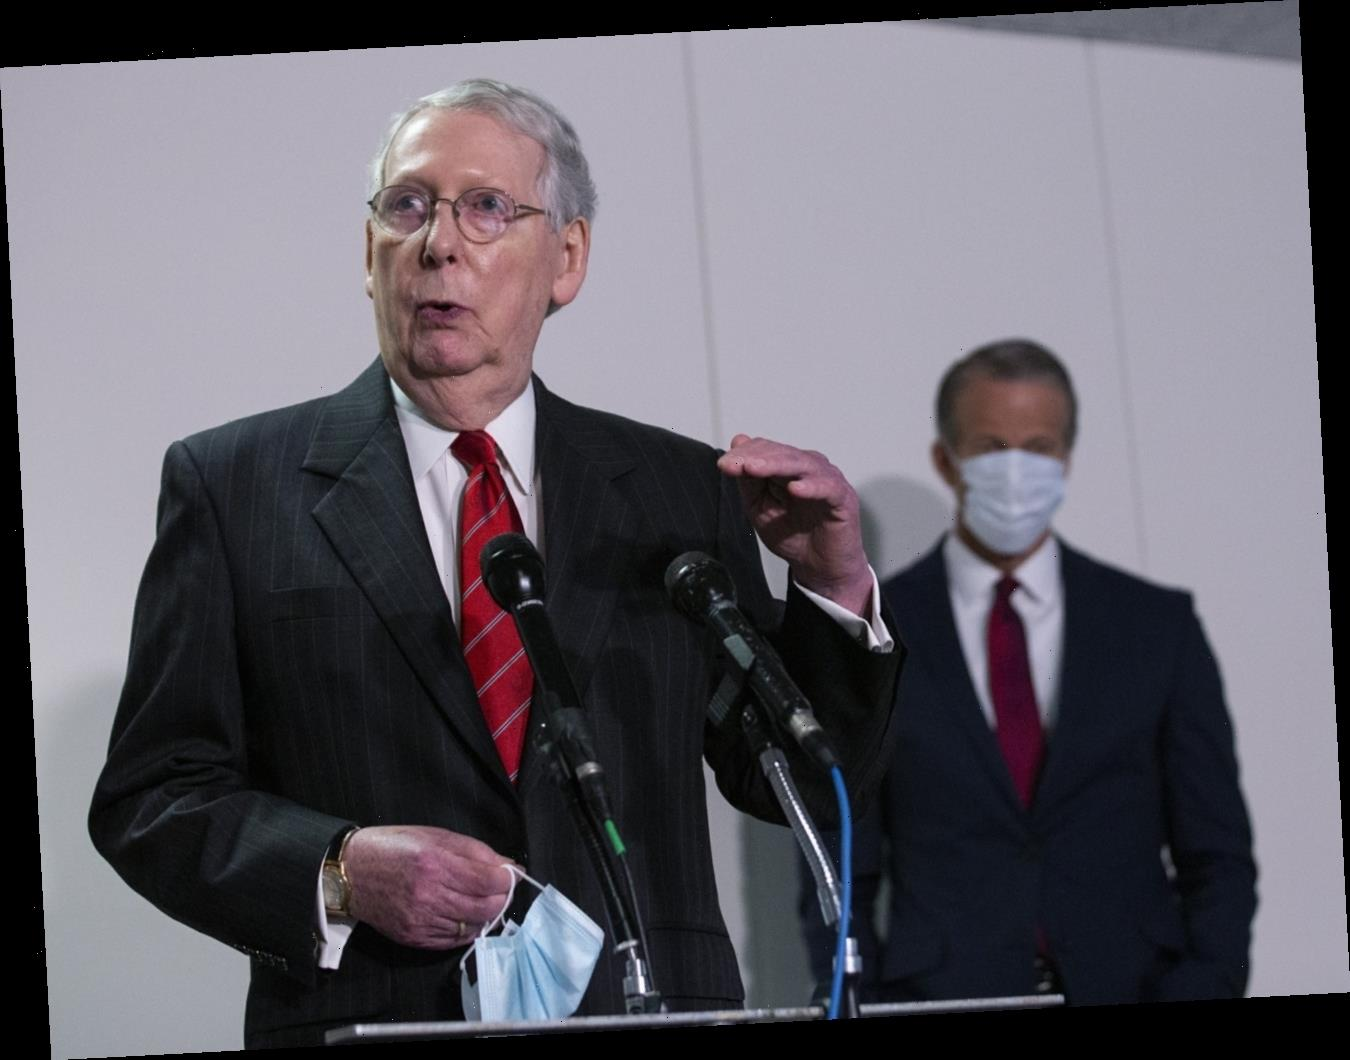 Mitch McConnell laughed like an evil turtle when challenged on the coronavirus